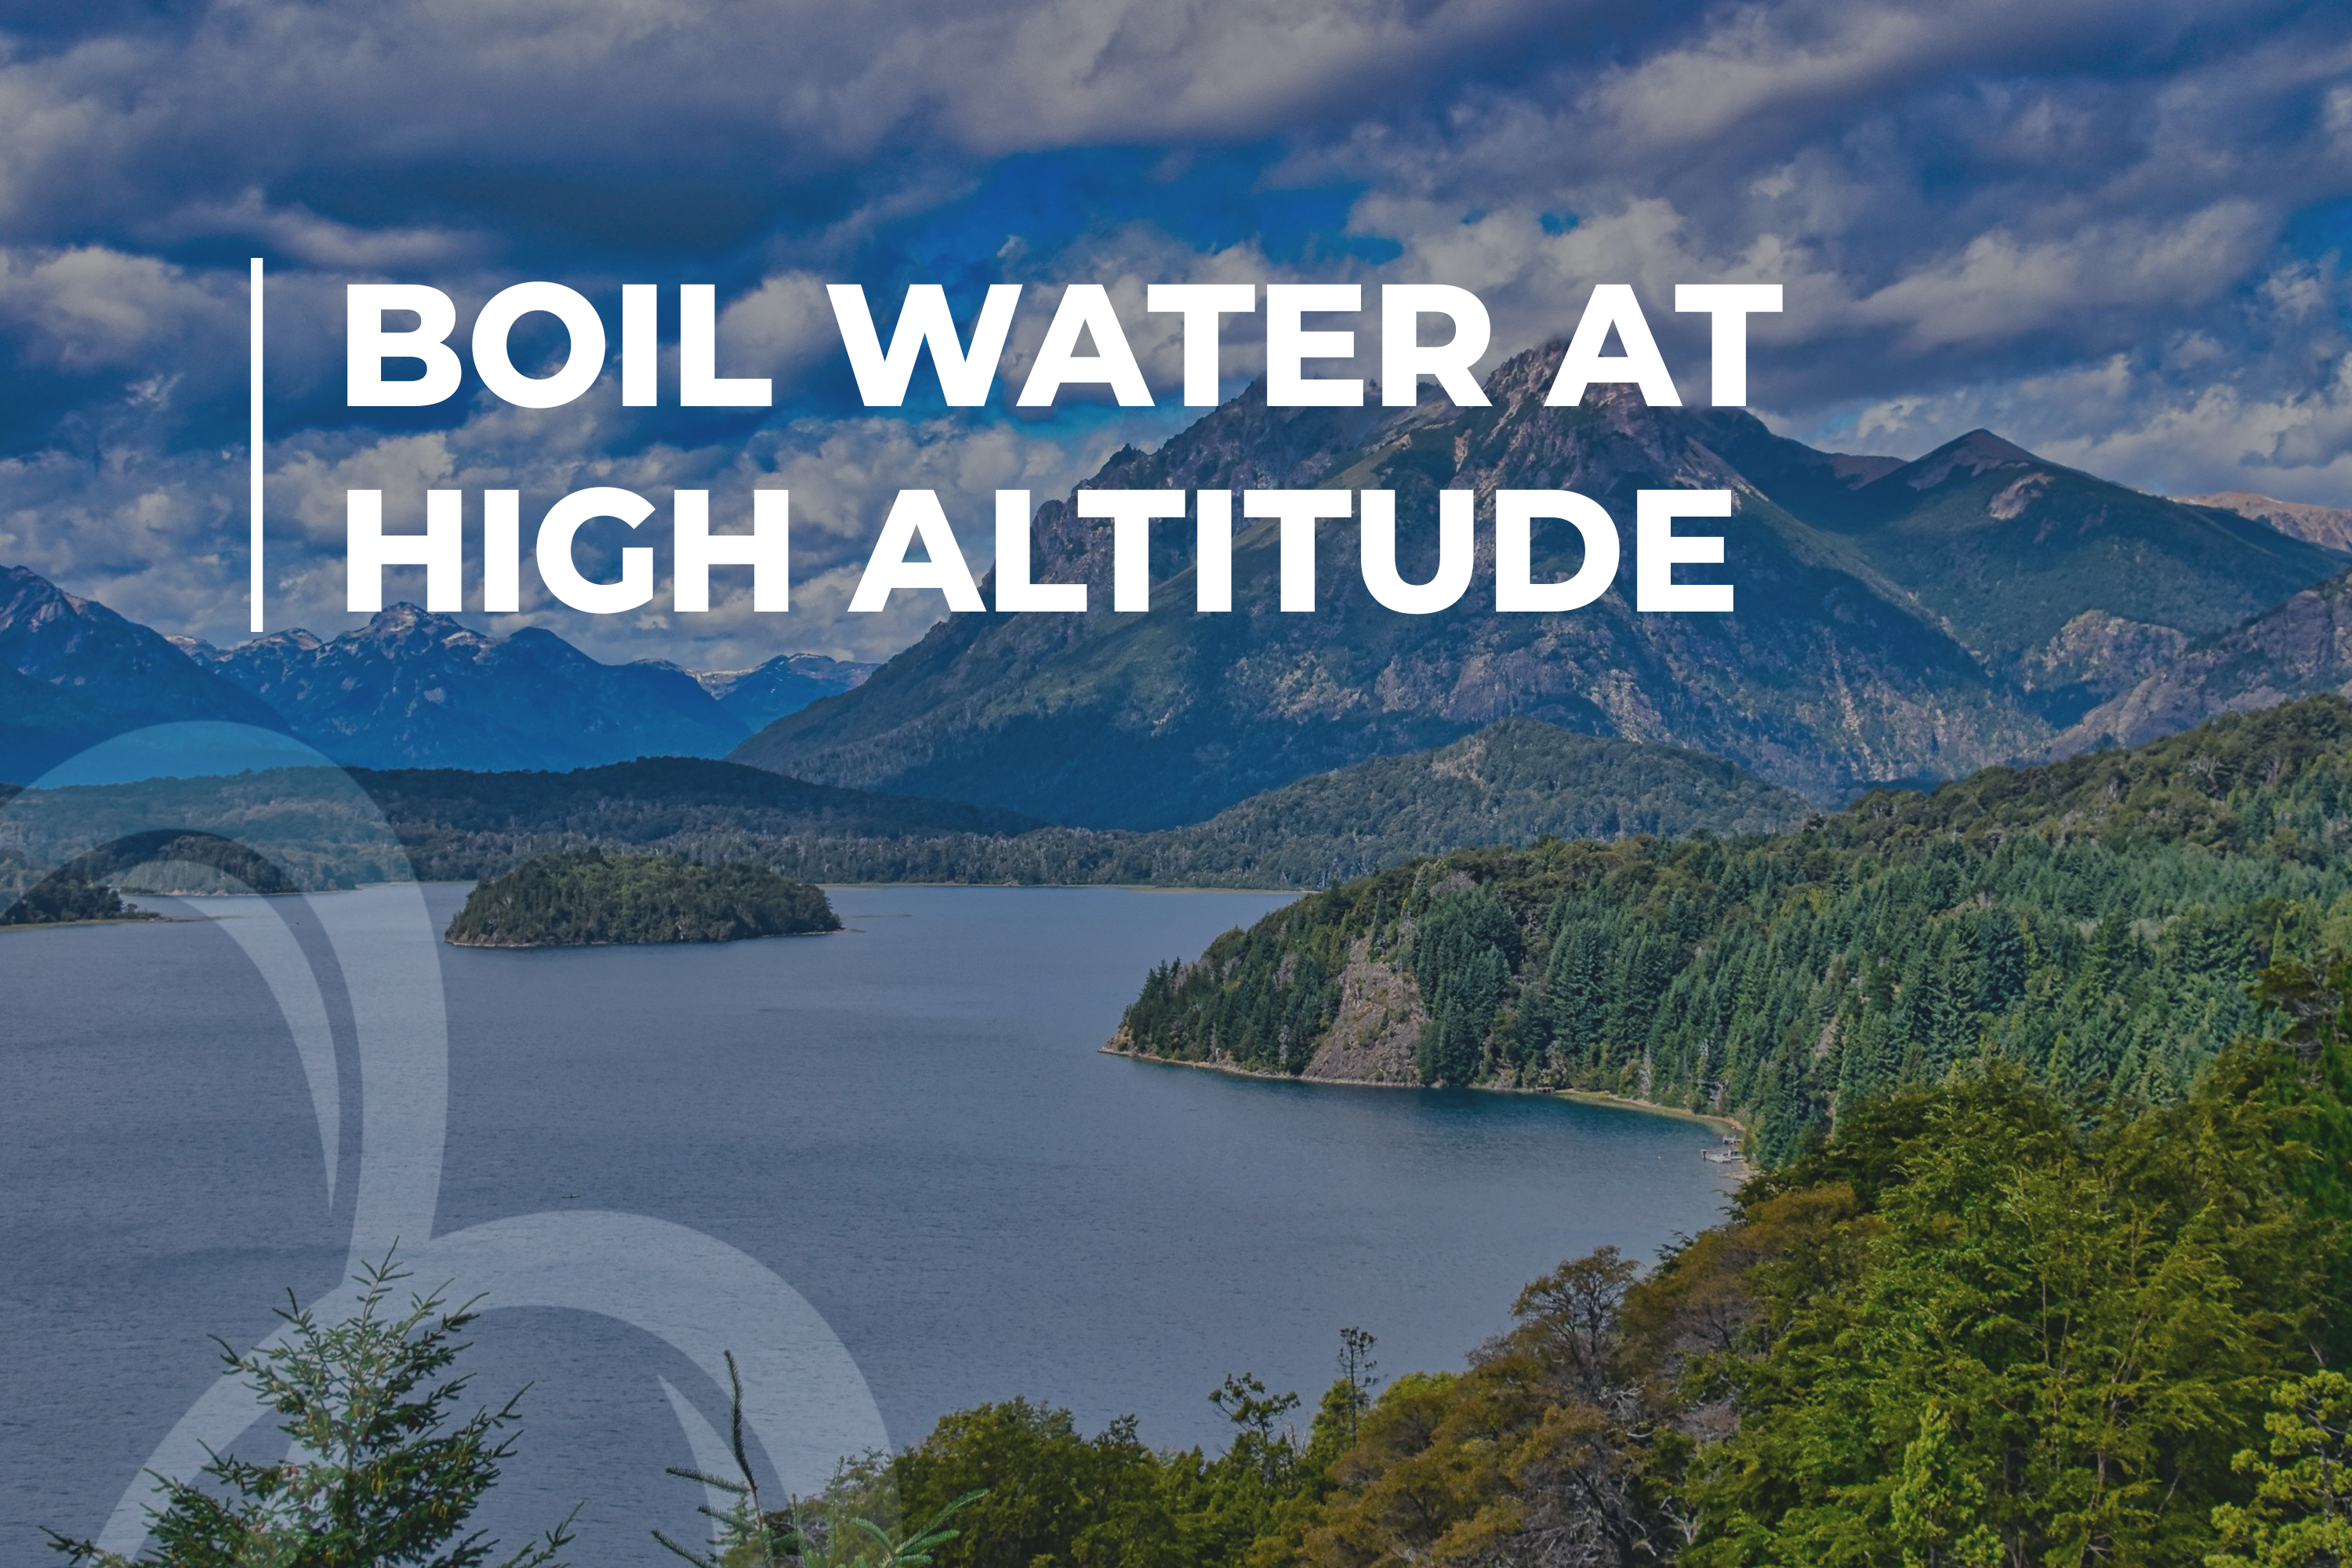 Boil water at high altitude